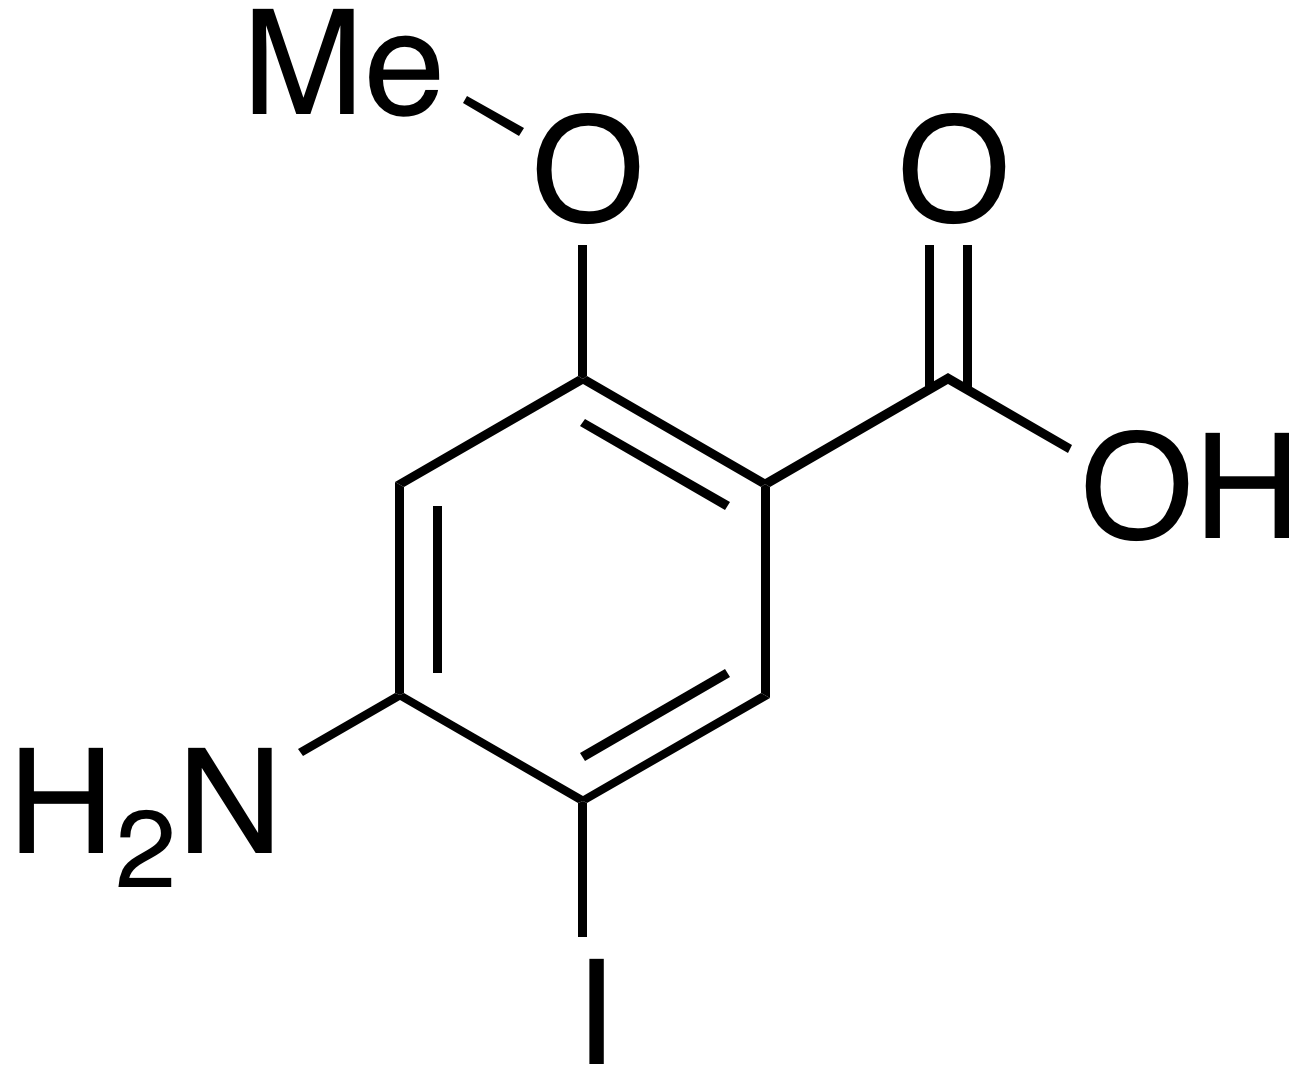 4-Amino-5-iodo-2-methoxybenzoic Acid